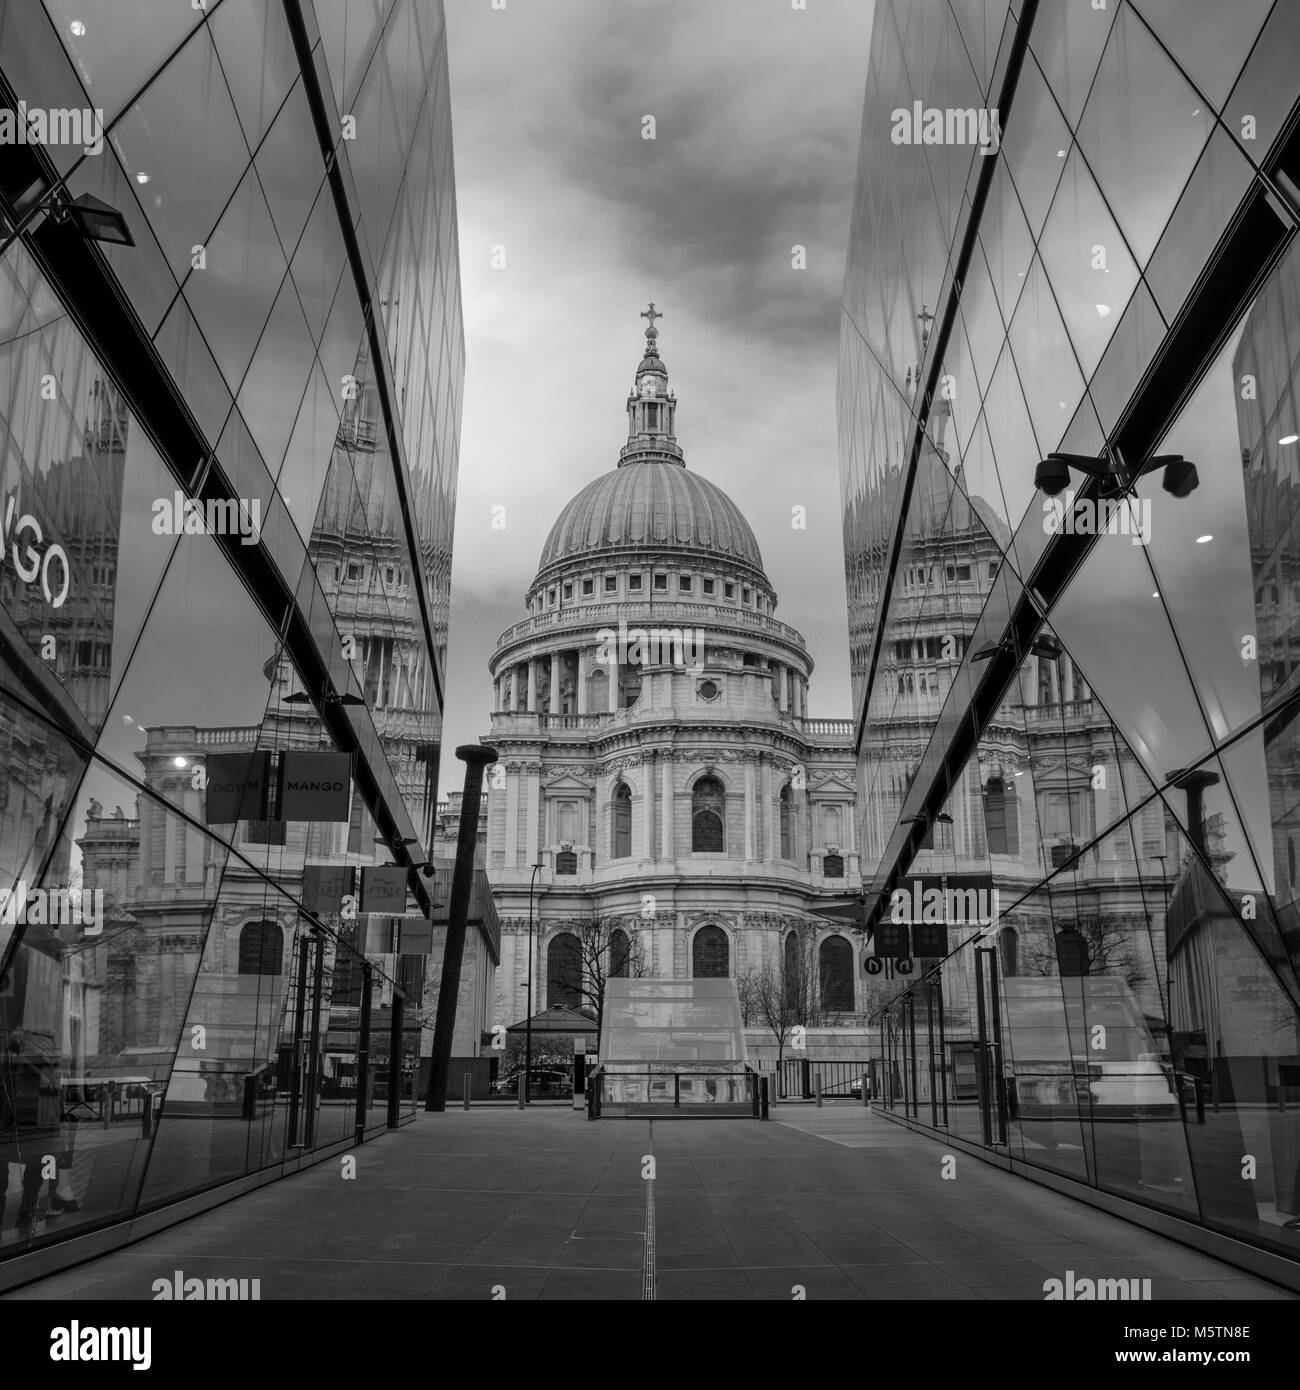 St Paul's Cathedral reflections in the glass windows of One New Change shopping centre - Black and White - Stock Image